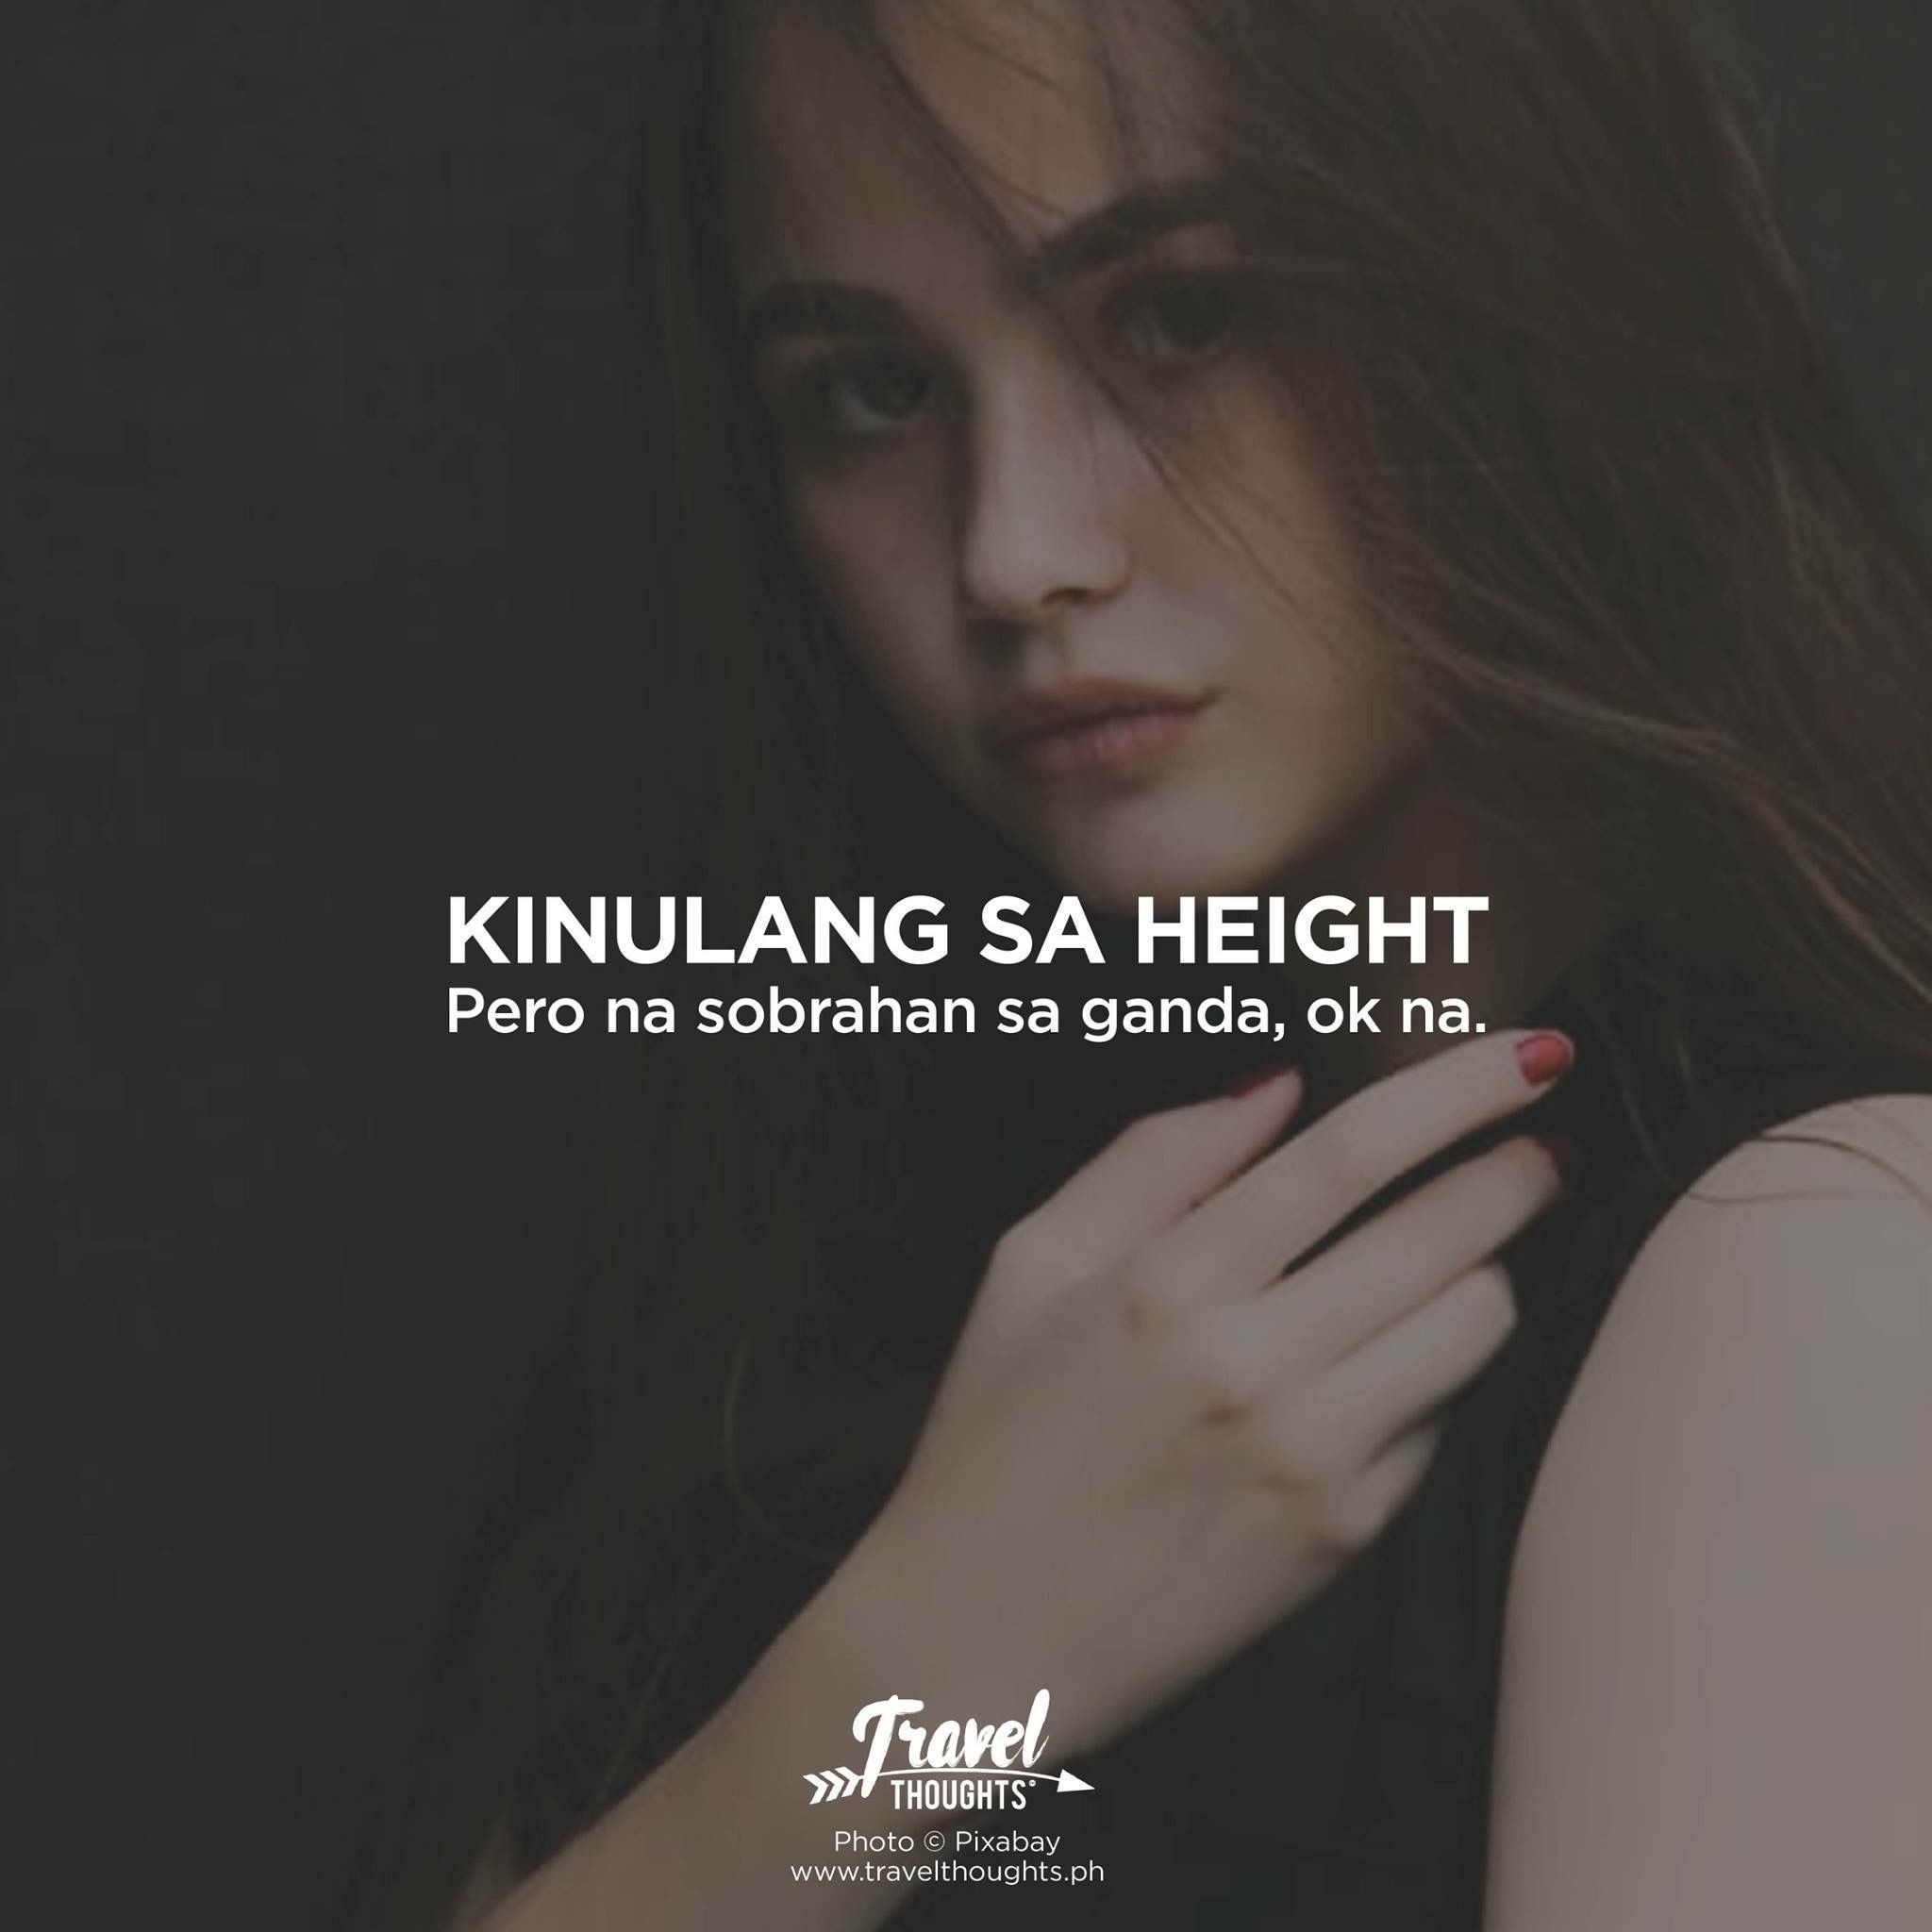 Up tagalog 2013 sweet lines pick Pick Up